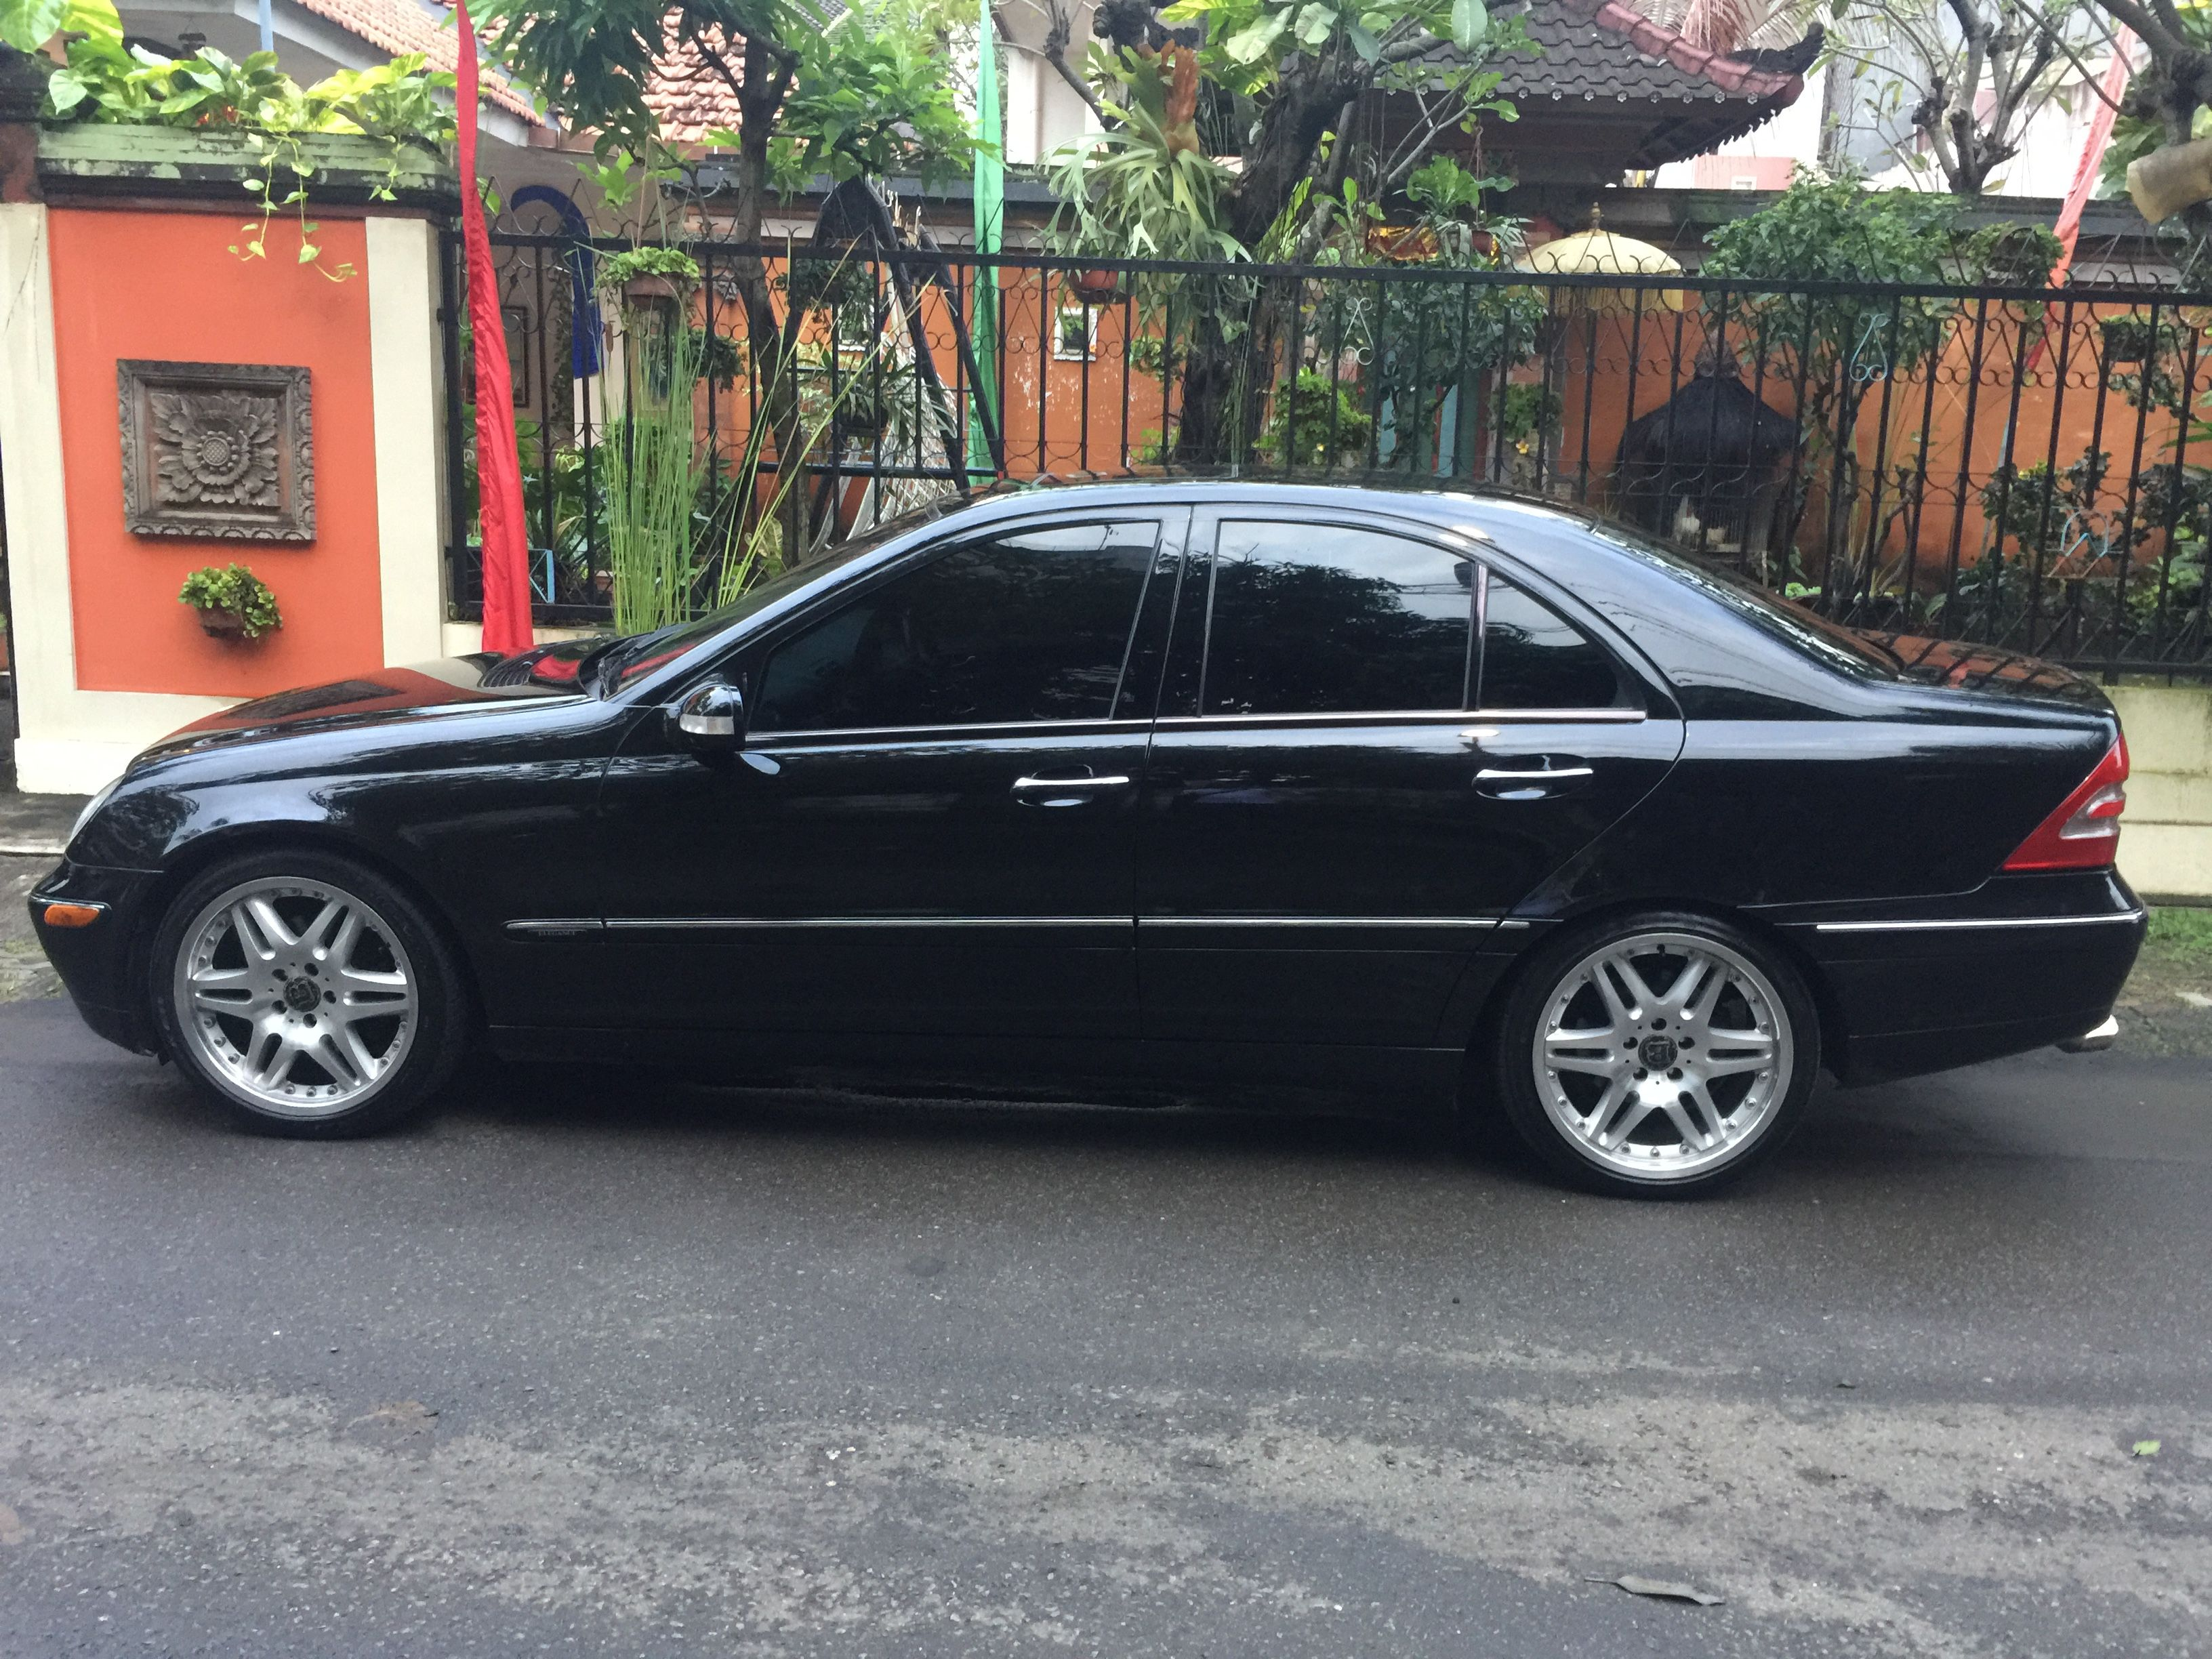 Mercedes benz c240 w203 mercedes benz c240 w203 for Mercedes benz c240 rims